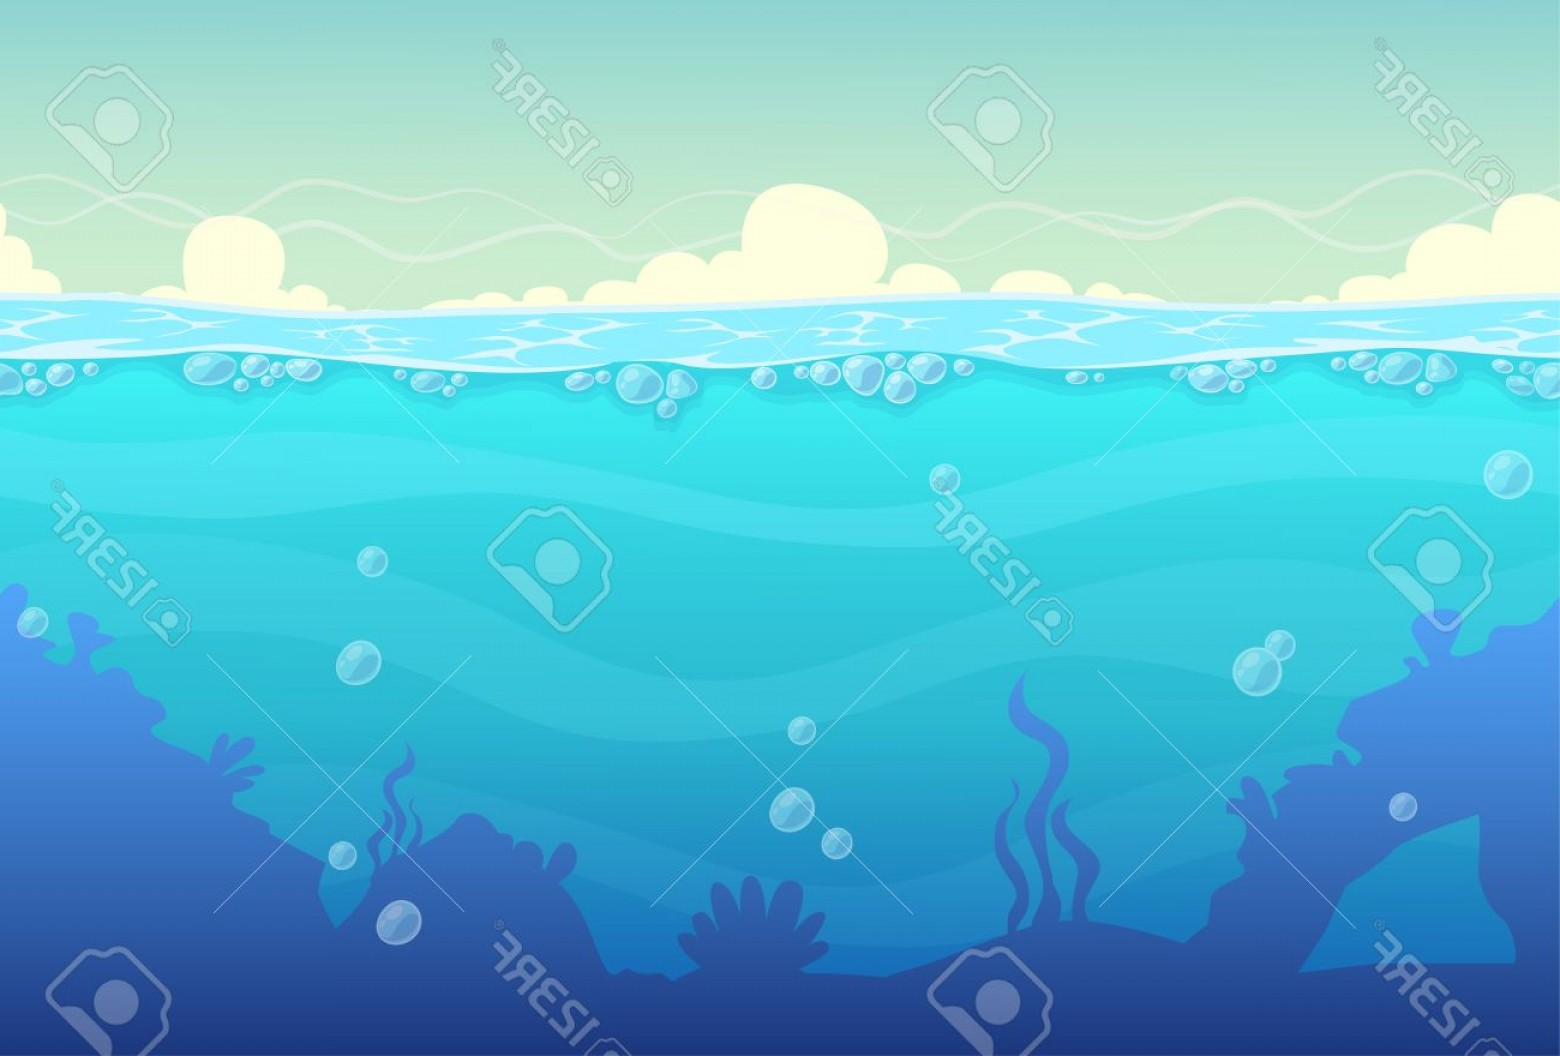 Underwater Sea Vector Art: Photostock Vector Underwater Cartoon Seamless Landscape Sea Vector Background